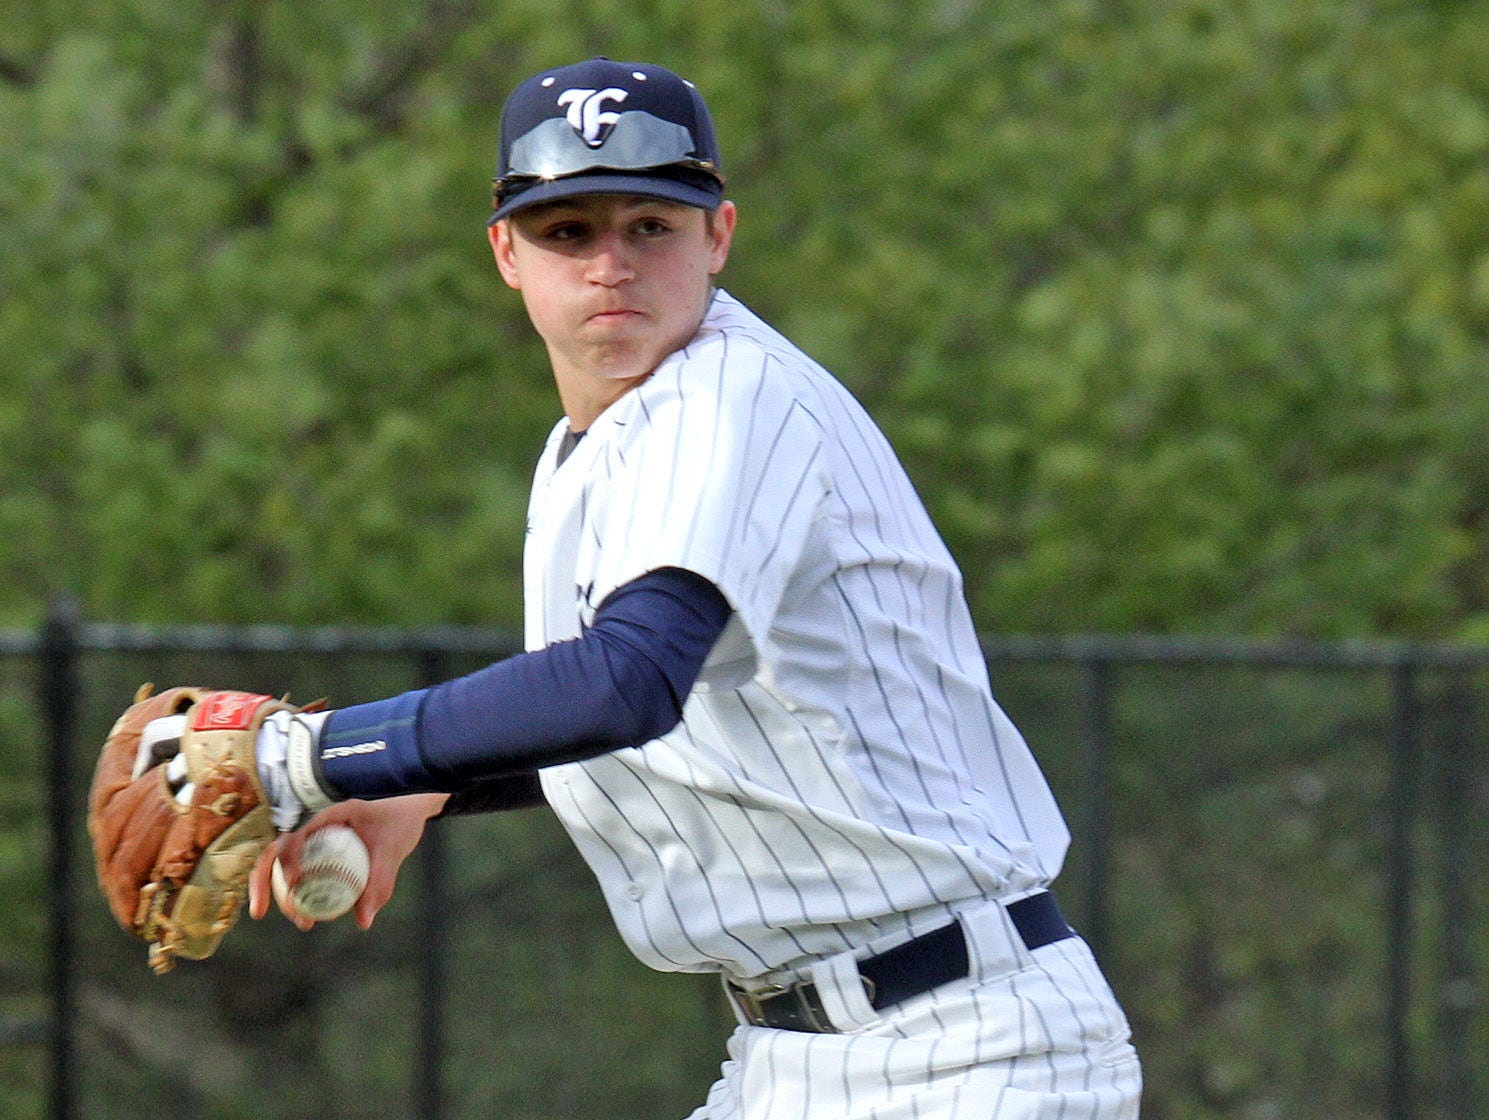 Eastchester defeated Pleasantville 2-1 in 10 innings of baseball at Eastchester High School on March 31, 2016.